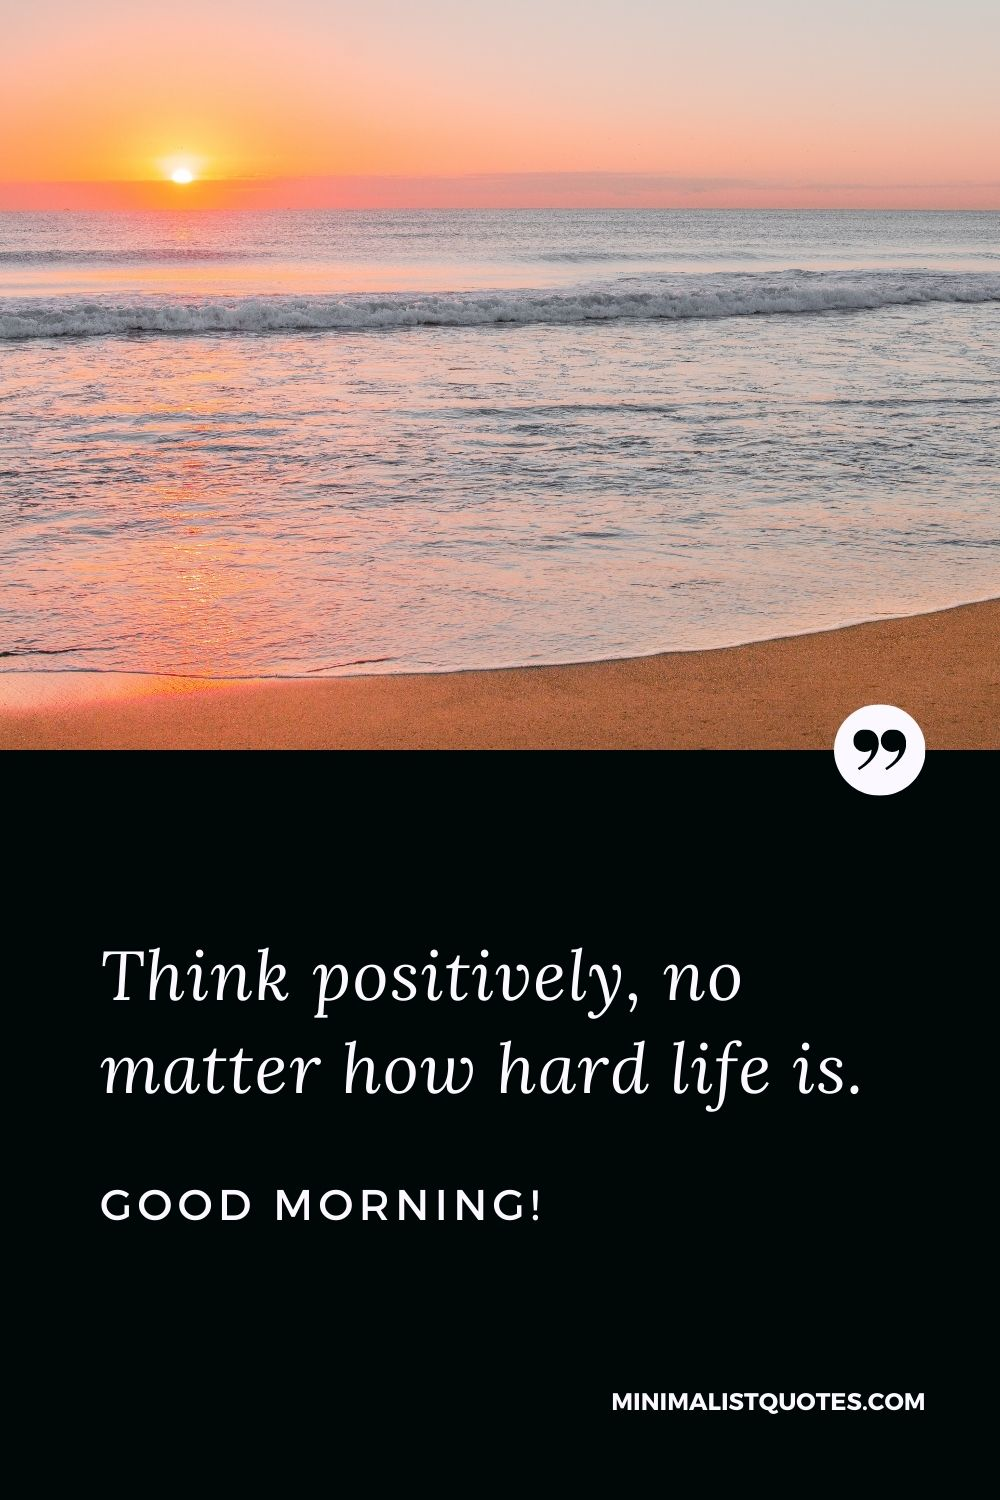 Good Morning wish, quote & message with image: Think positively, no matter how hard life is. Good Morning!